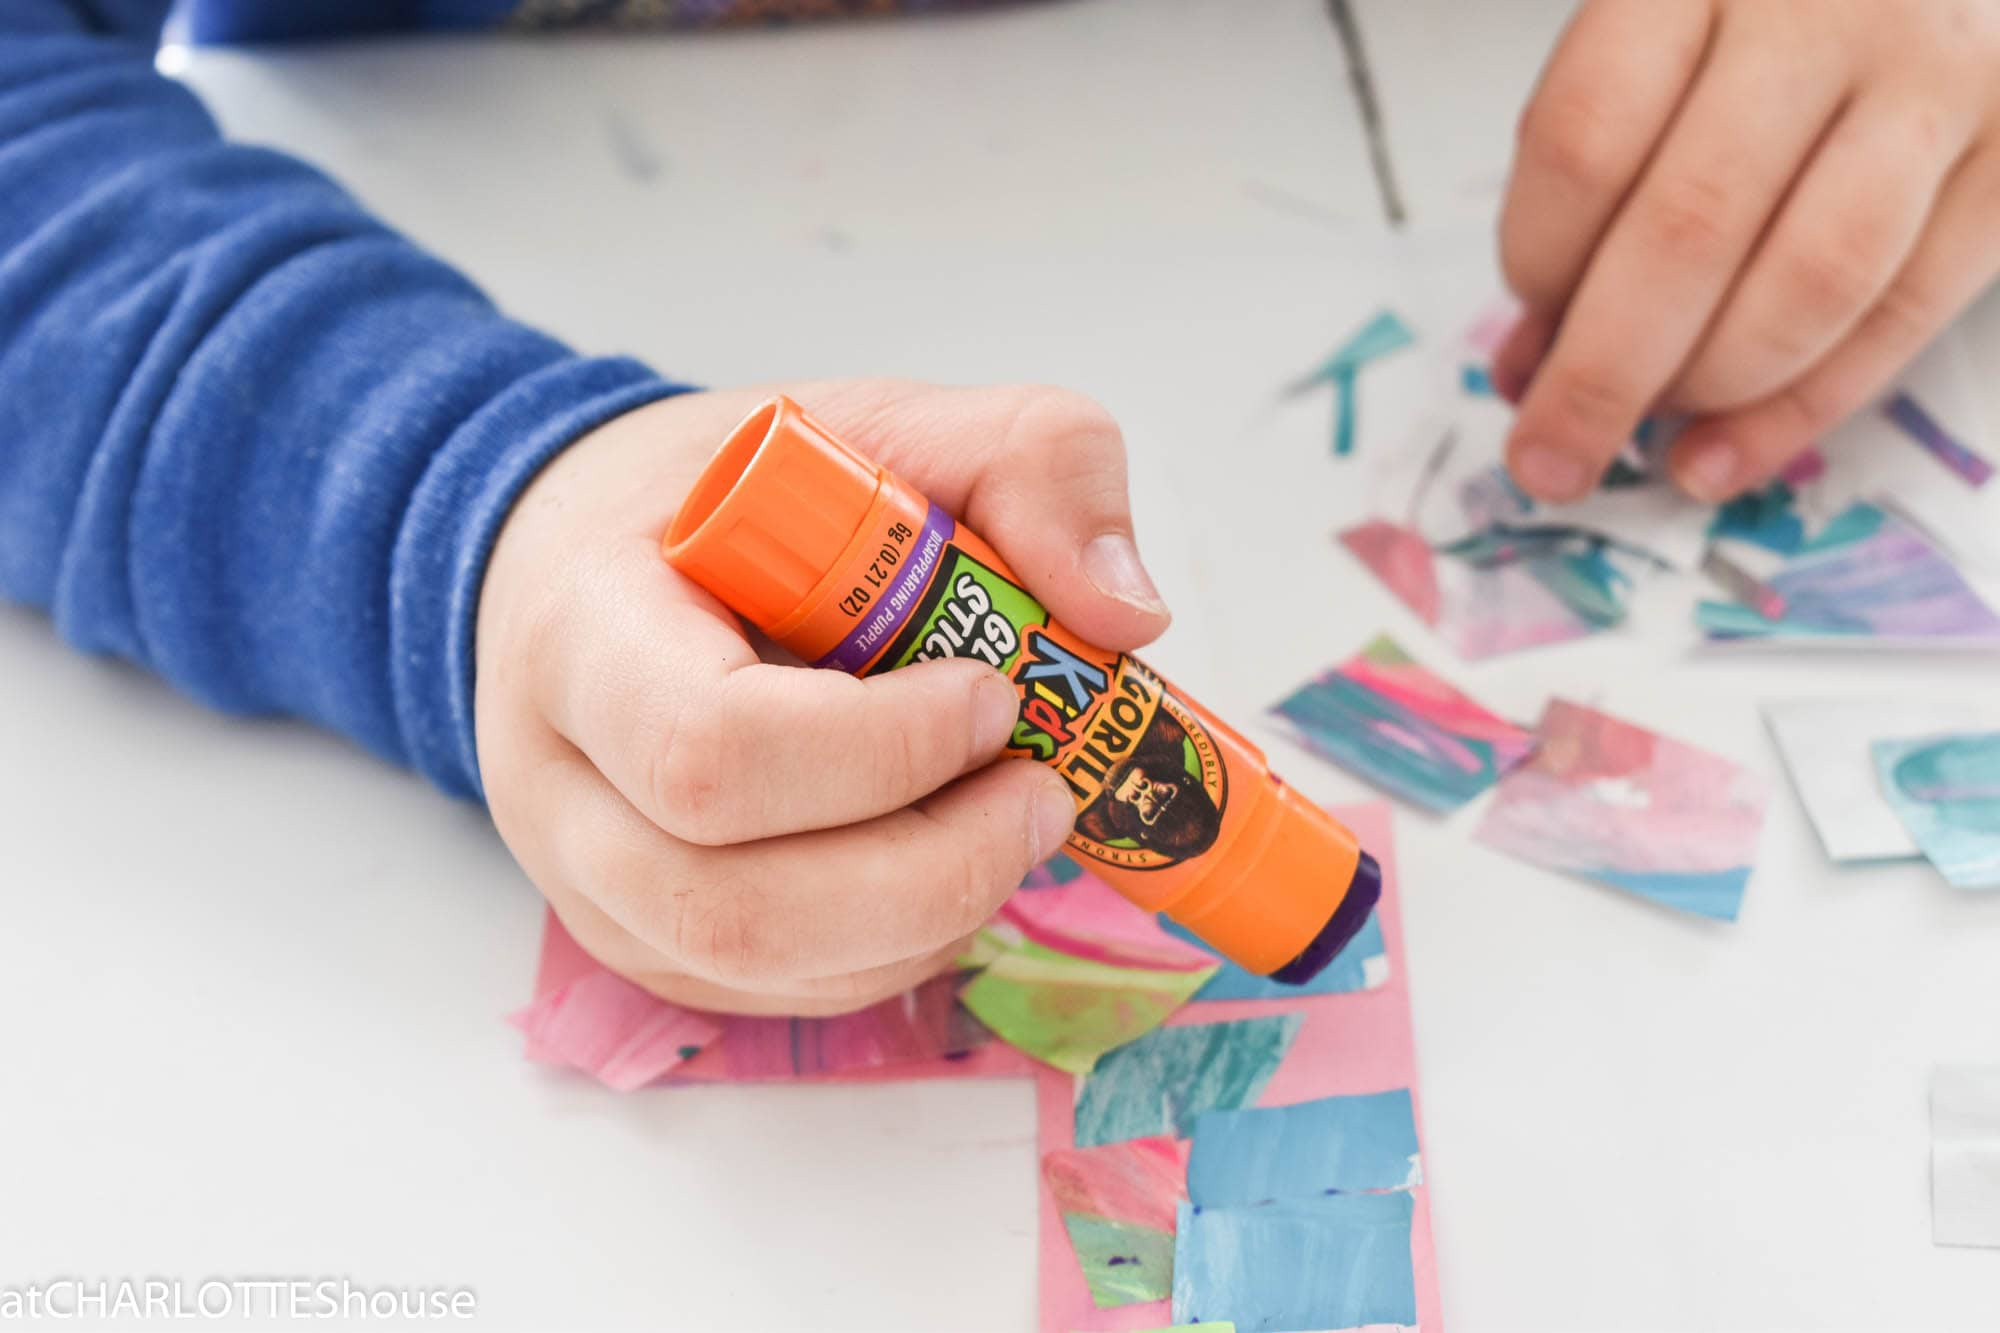 Child's hand using Gorilla Glue Stick